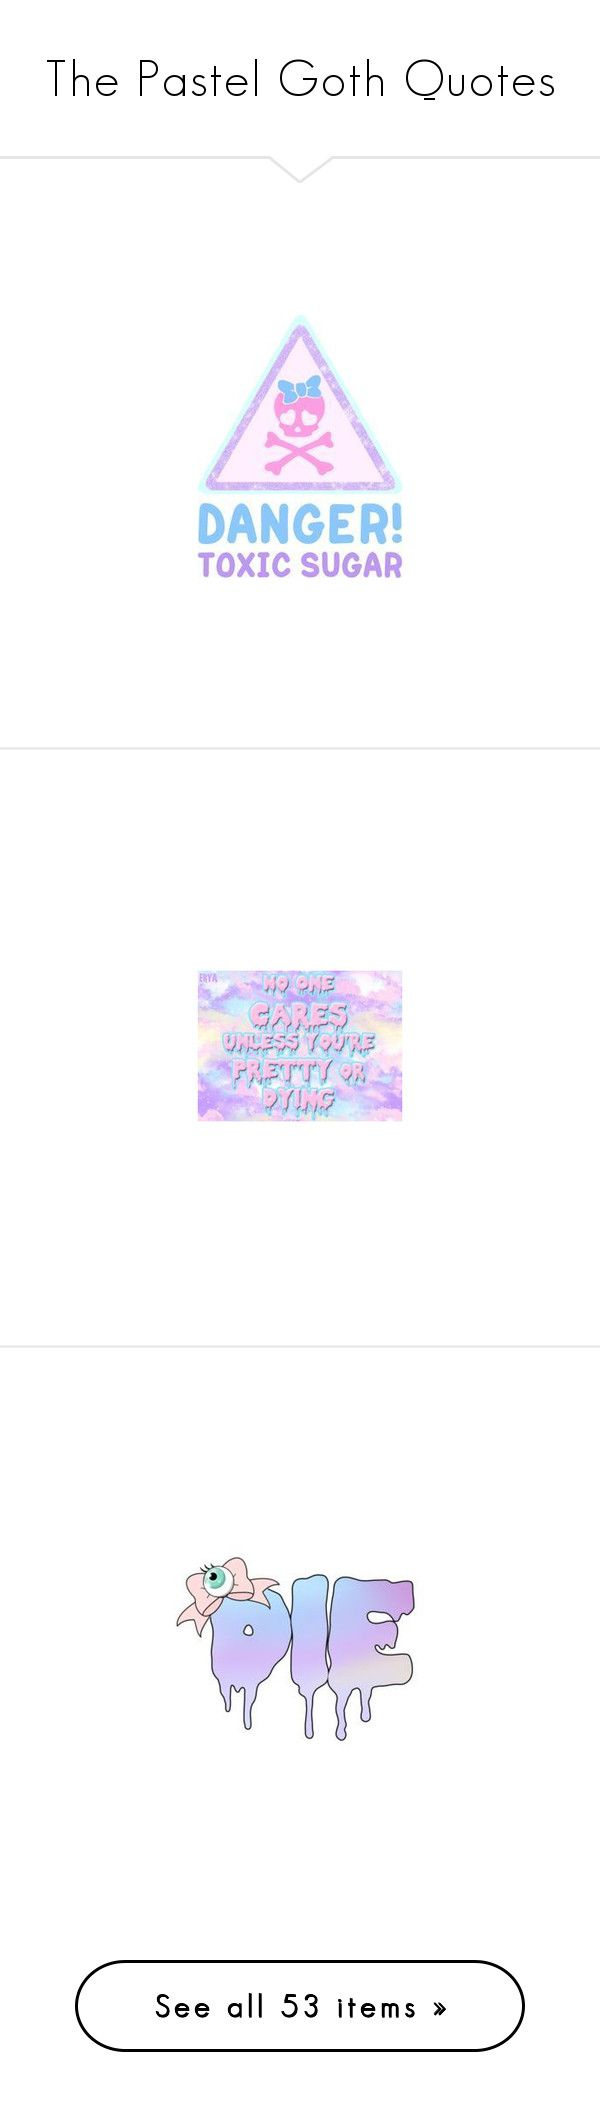 """""""The Pastel Goth Quotes"""" by adorablequeen ❤ liked on Polyvore featuring text, filler, words, phrase, quotes, saying, pictures, backgrounds, fillers and doodle"""